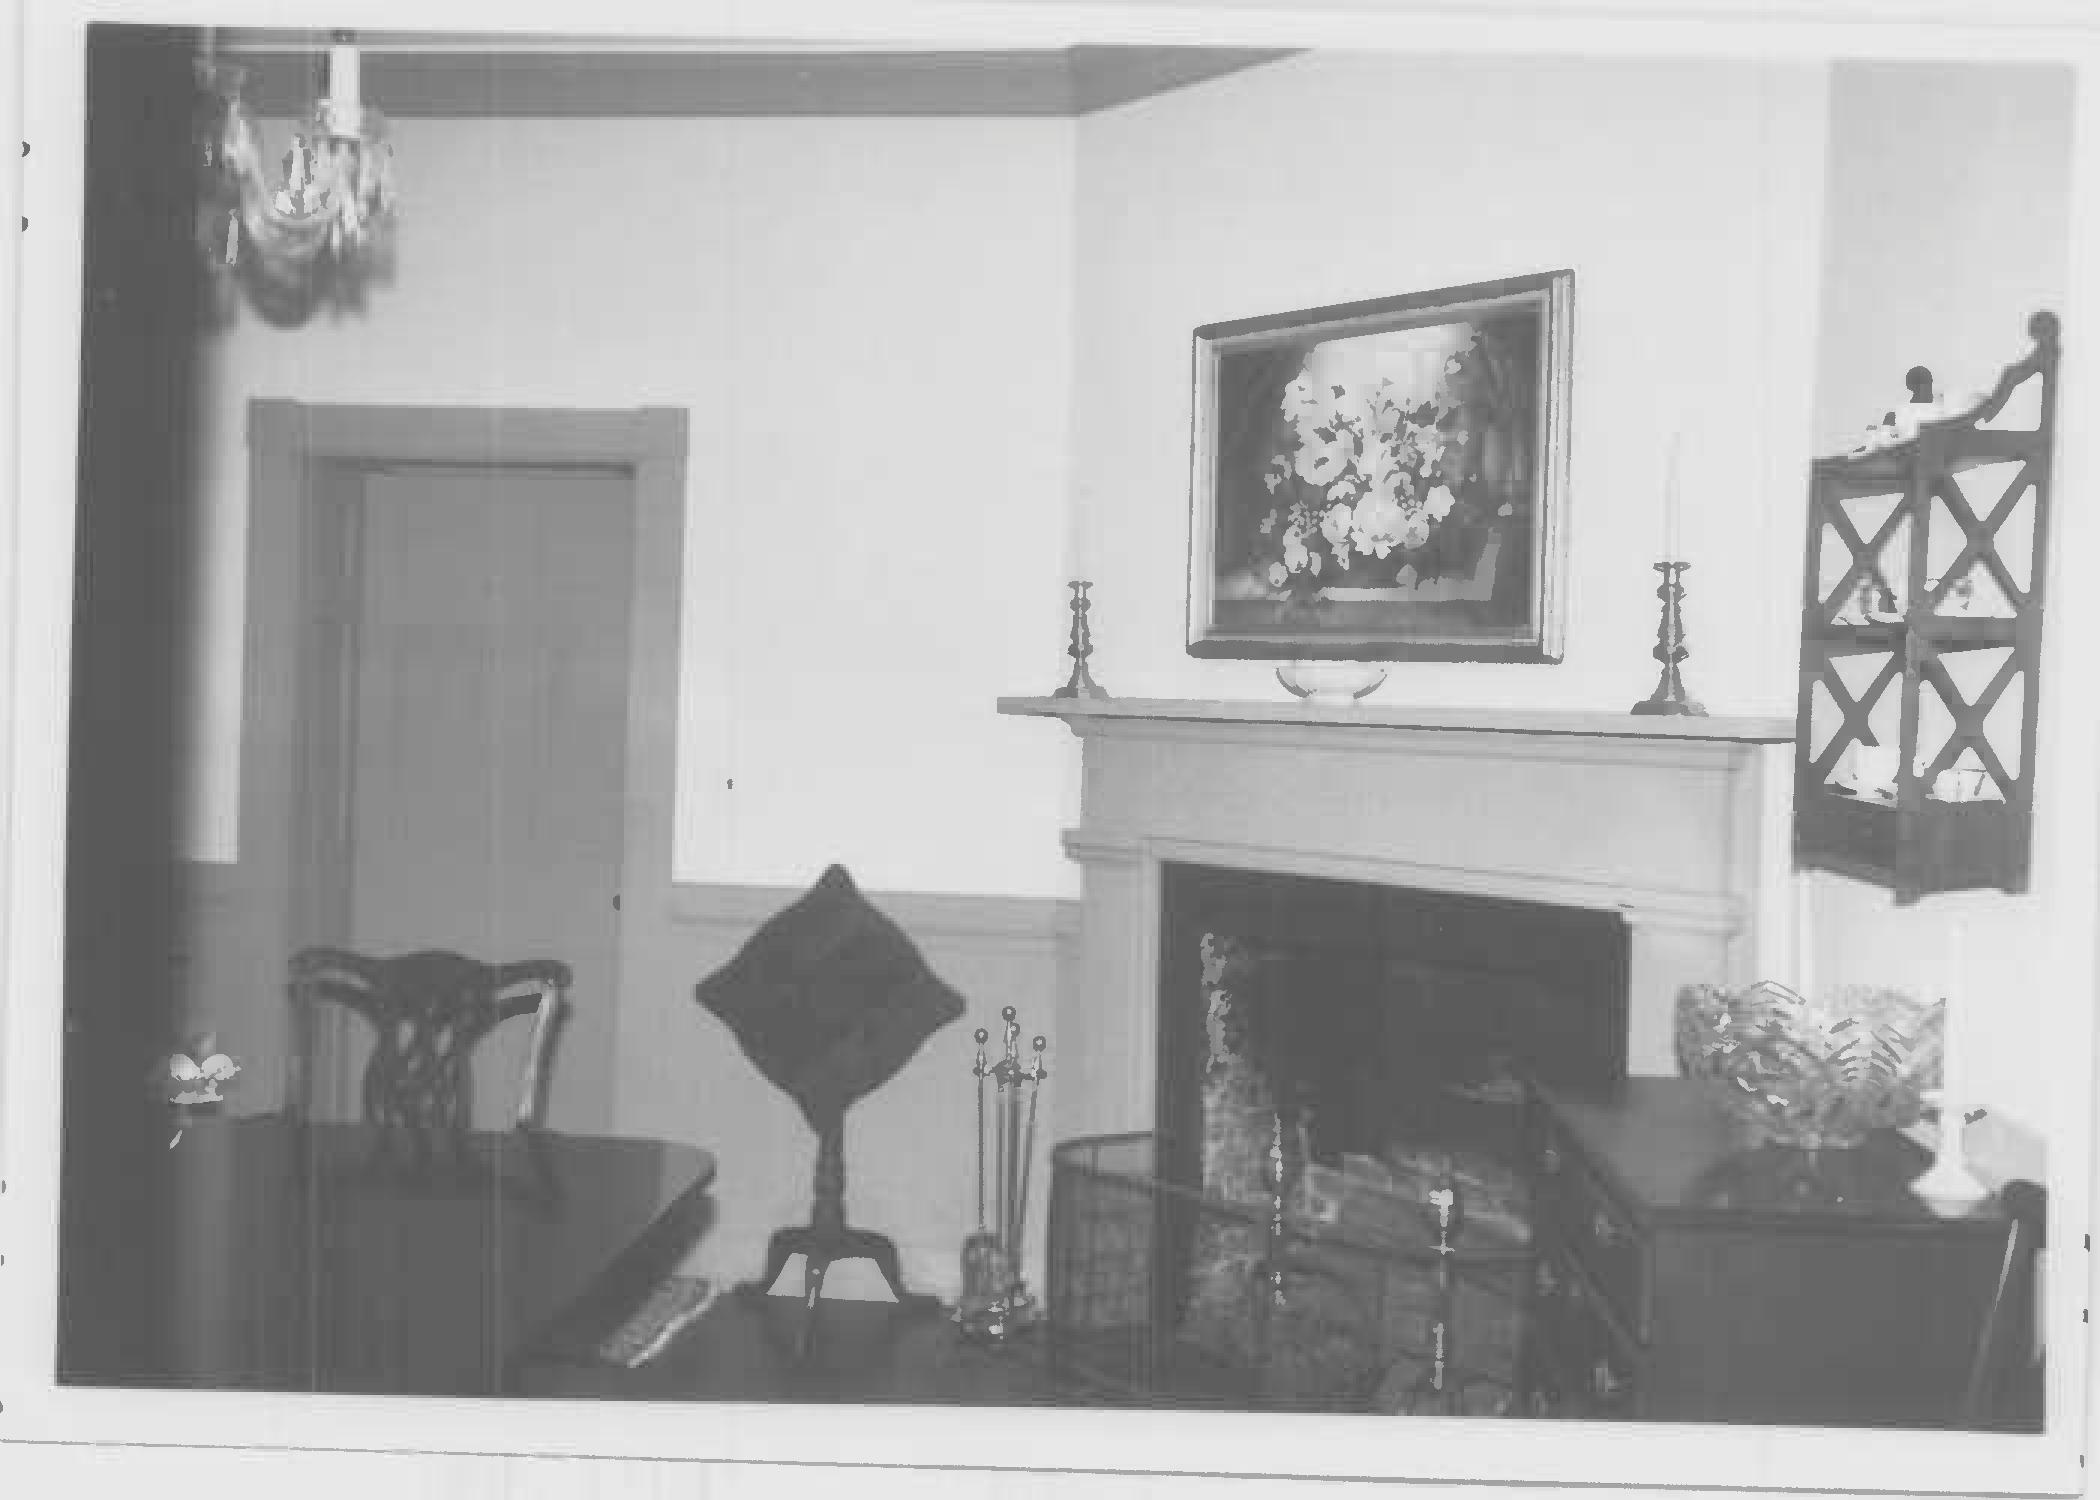 Mantel, north room of main block, first floor, Whites Hall in Maryland